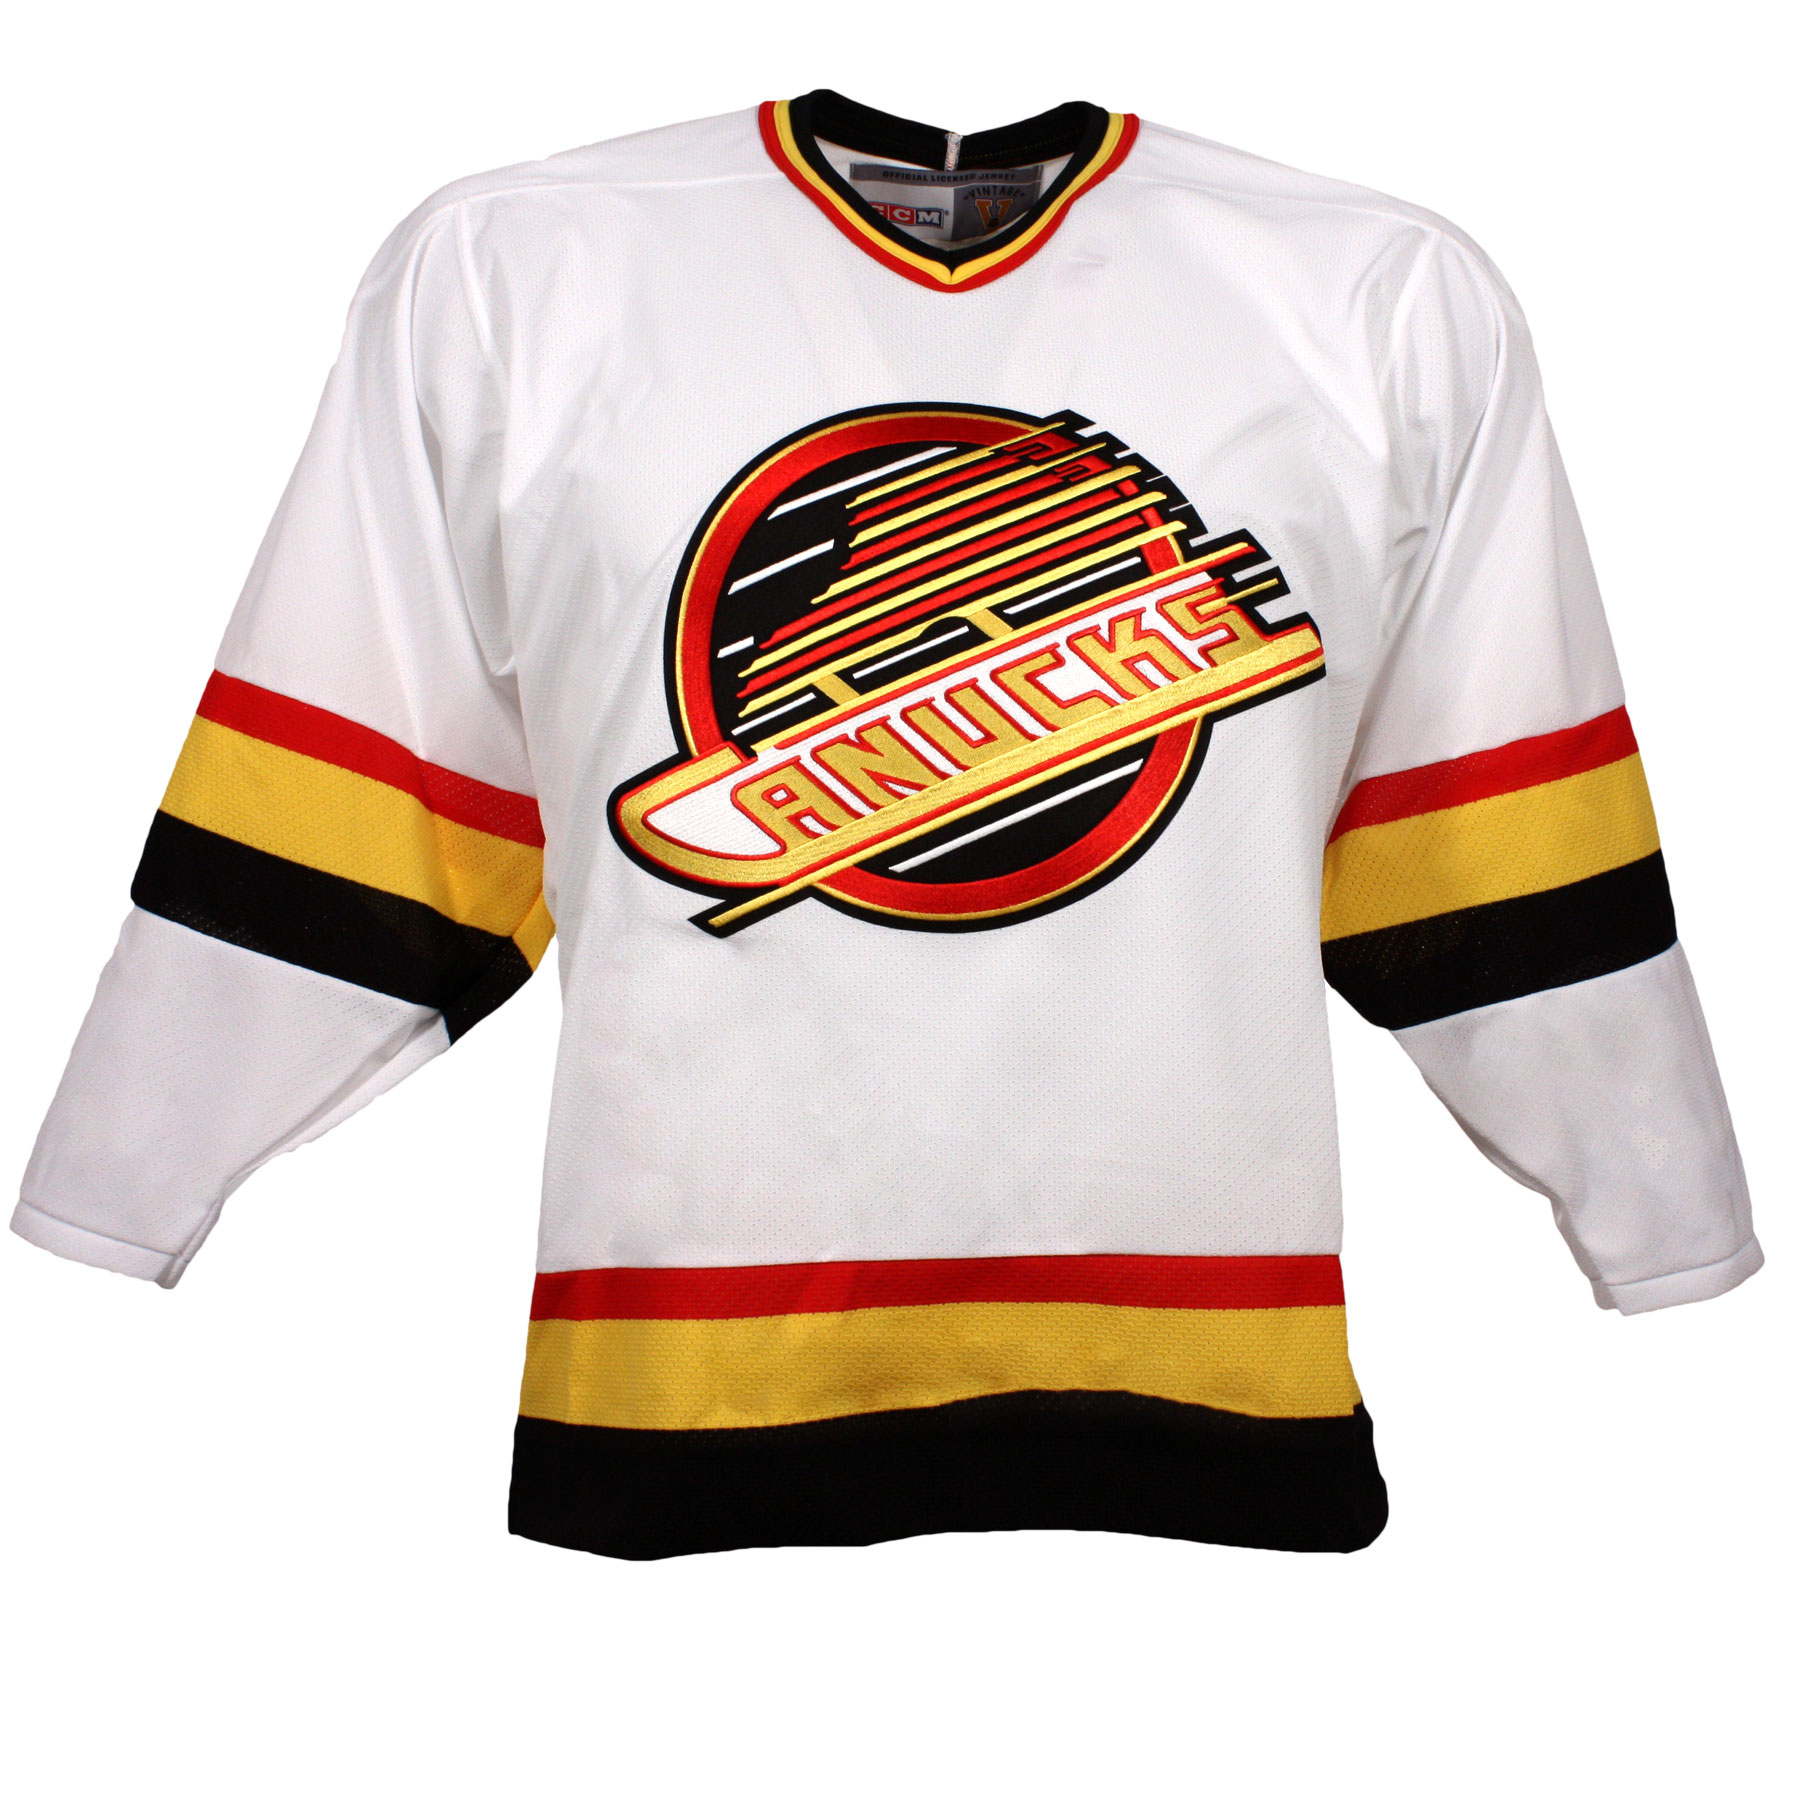 reputable site a2d2a c7417 Vancouver Canucks Vintage Replica Jersey 1994 (Home) - XX ...